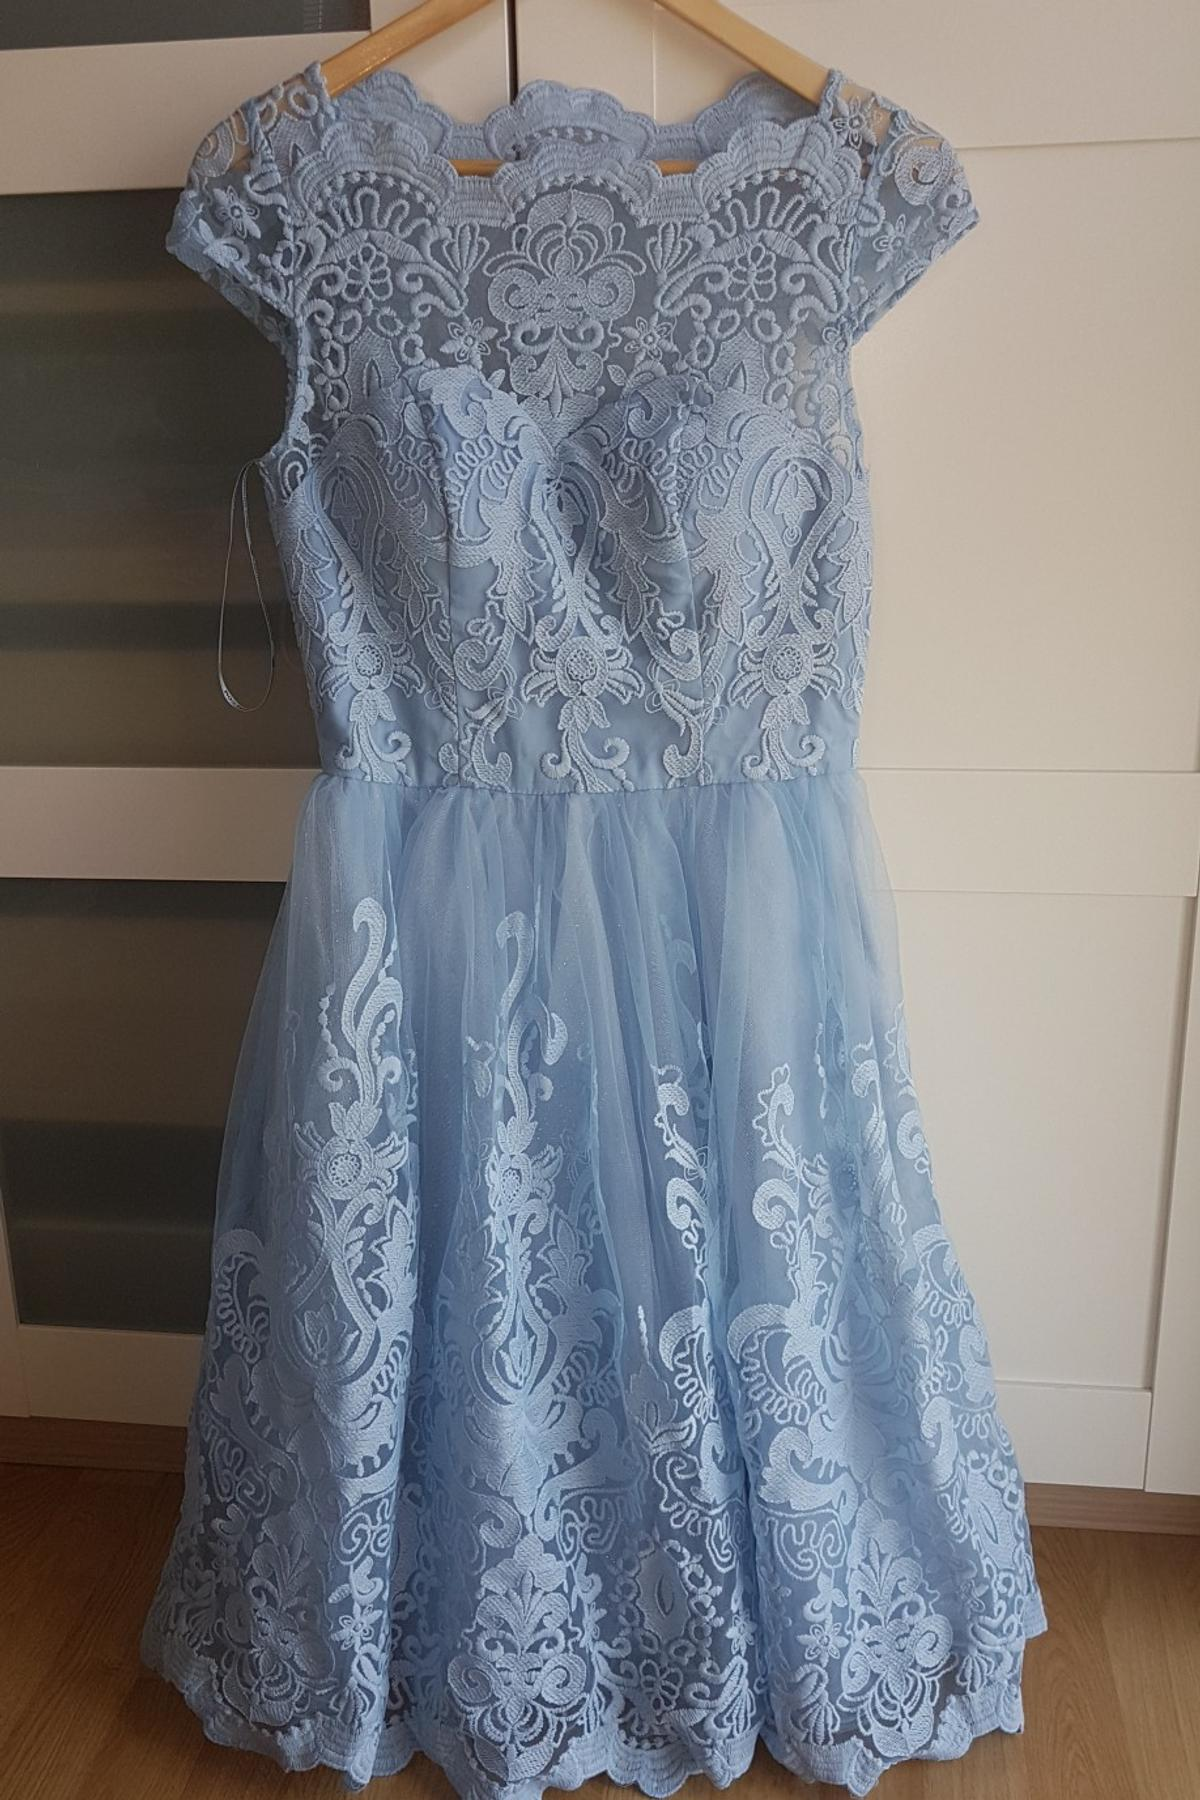 chi chi london midi kleid 34 hellblau